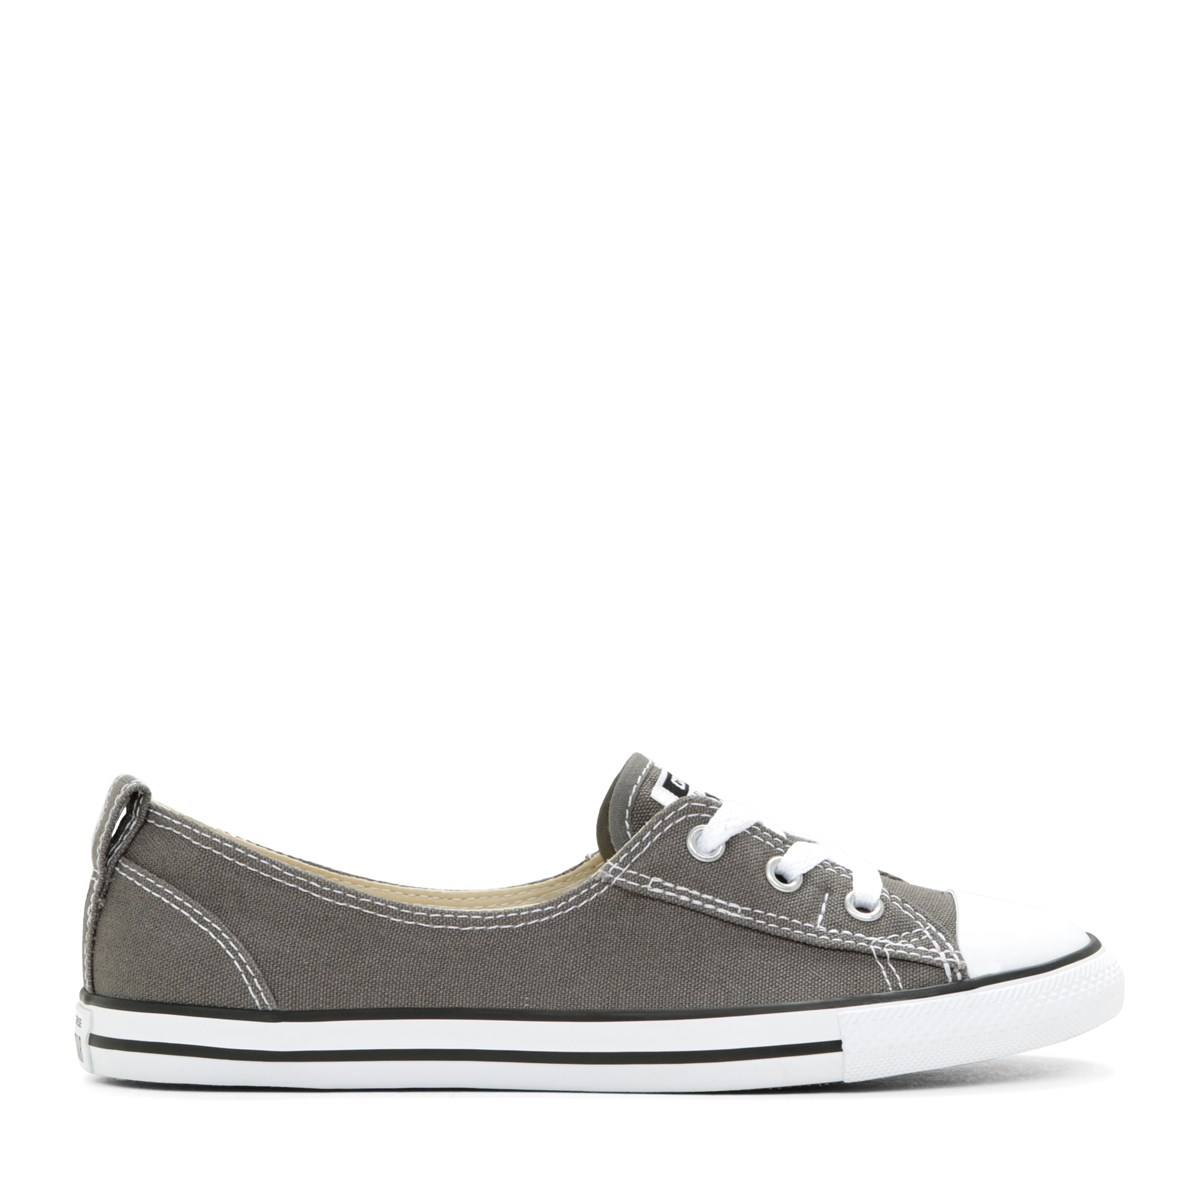 Chaussures Chuck Taylor All Star Ballet pour femmes